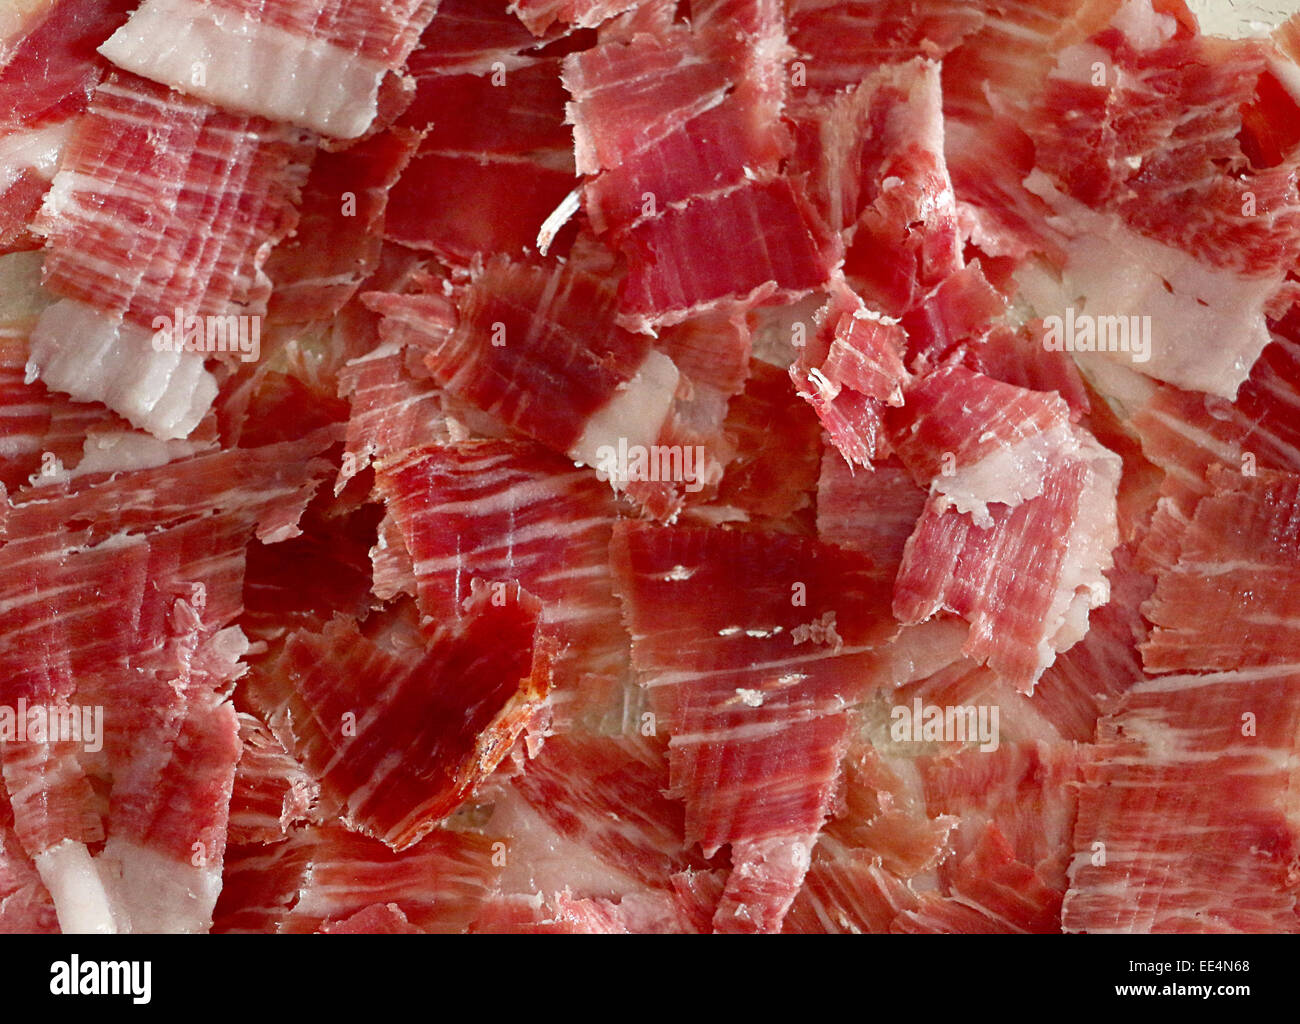 Traditionally Spanish Iberic ham (made of cured pork meat) - Stock Image